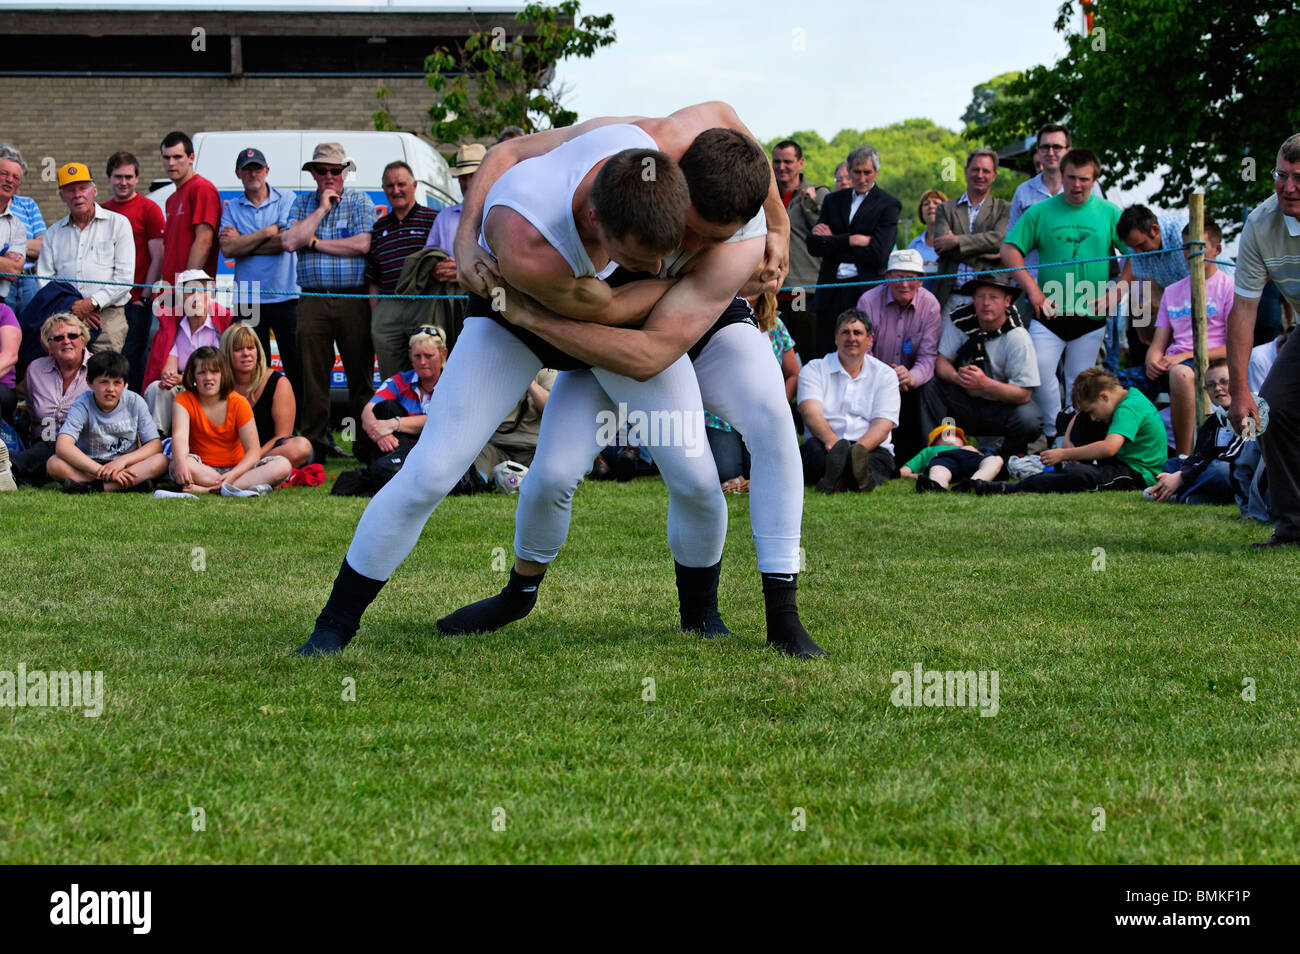 Cumberland and Westmoreland Wrestling contest at the Northumberland County Show in Corbridge - Stock Image